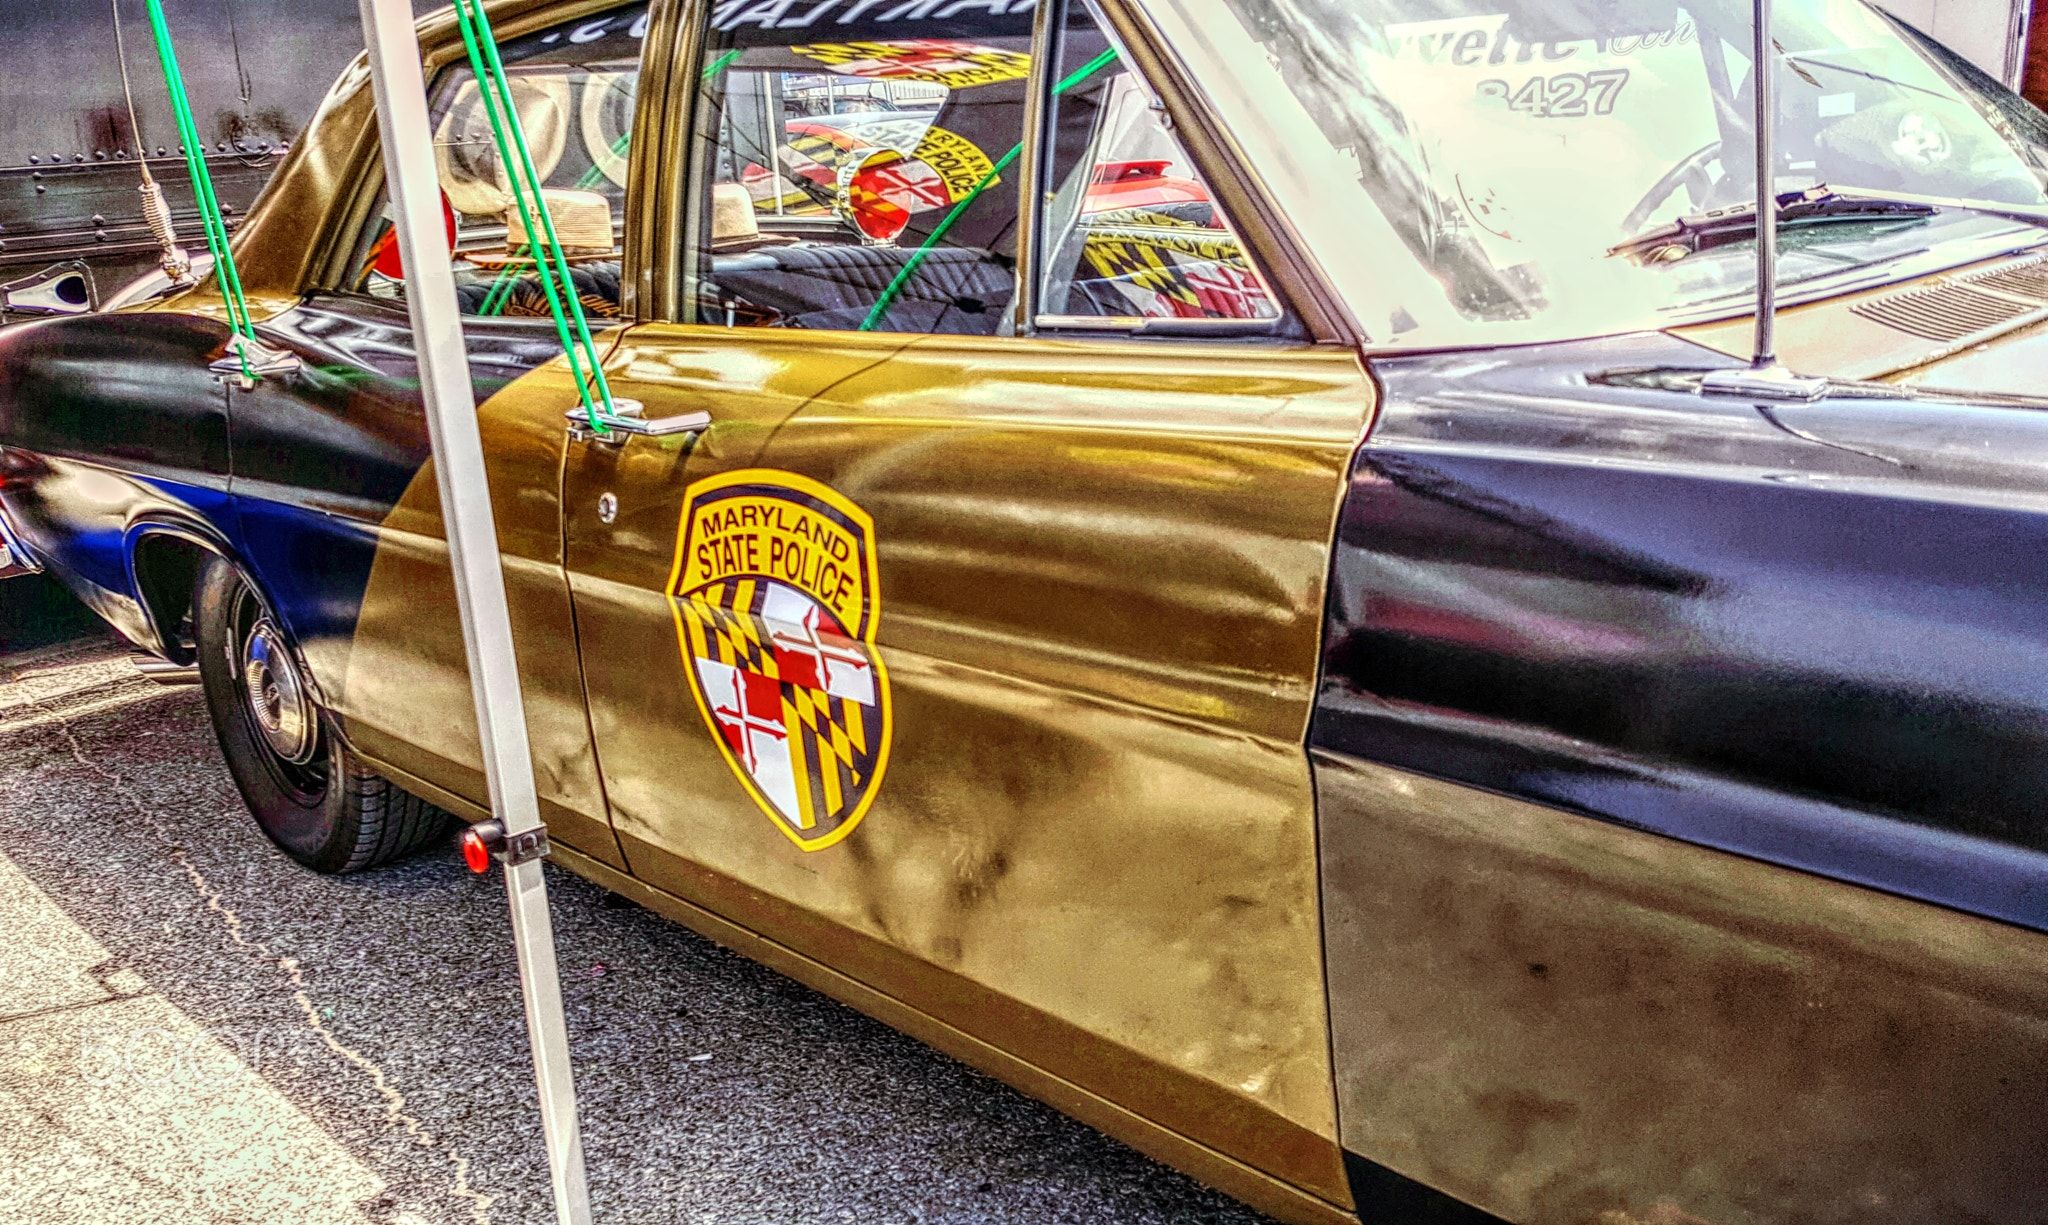 Maryland State Trooper Vintage Retired Ford Classic Police Car At The Inlet For Cruisin Ocean City Maryland May 17 State Trooper Police Cars Police